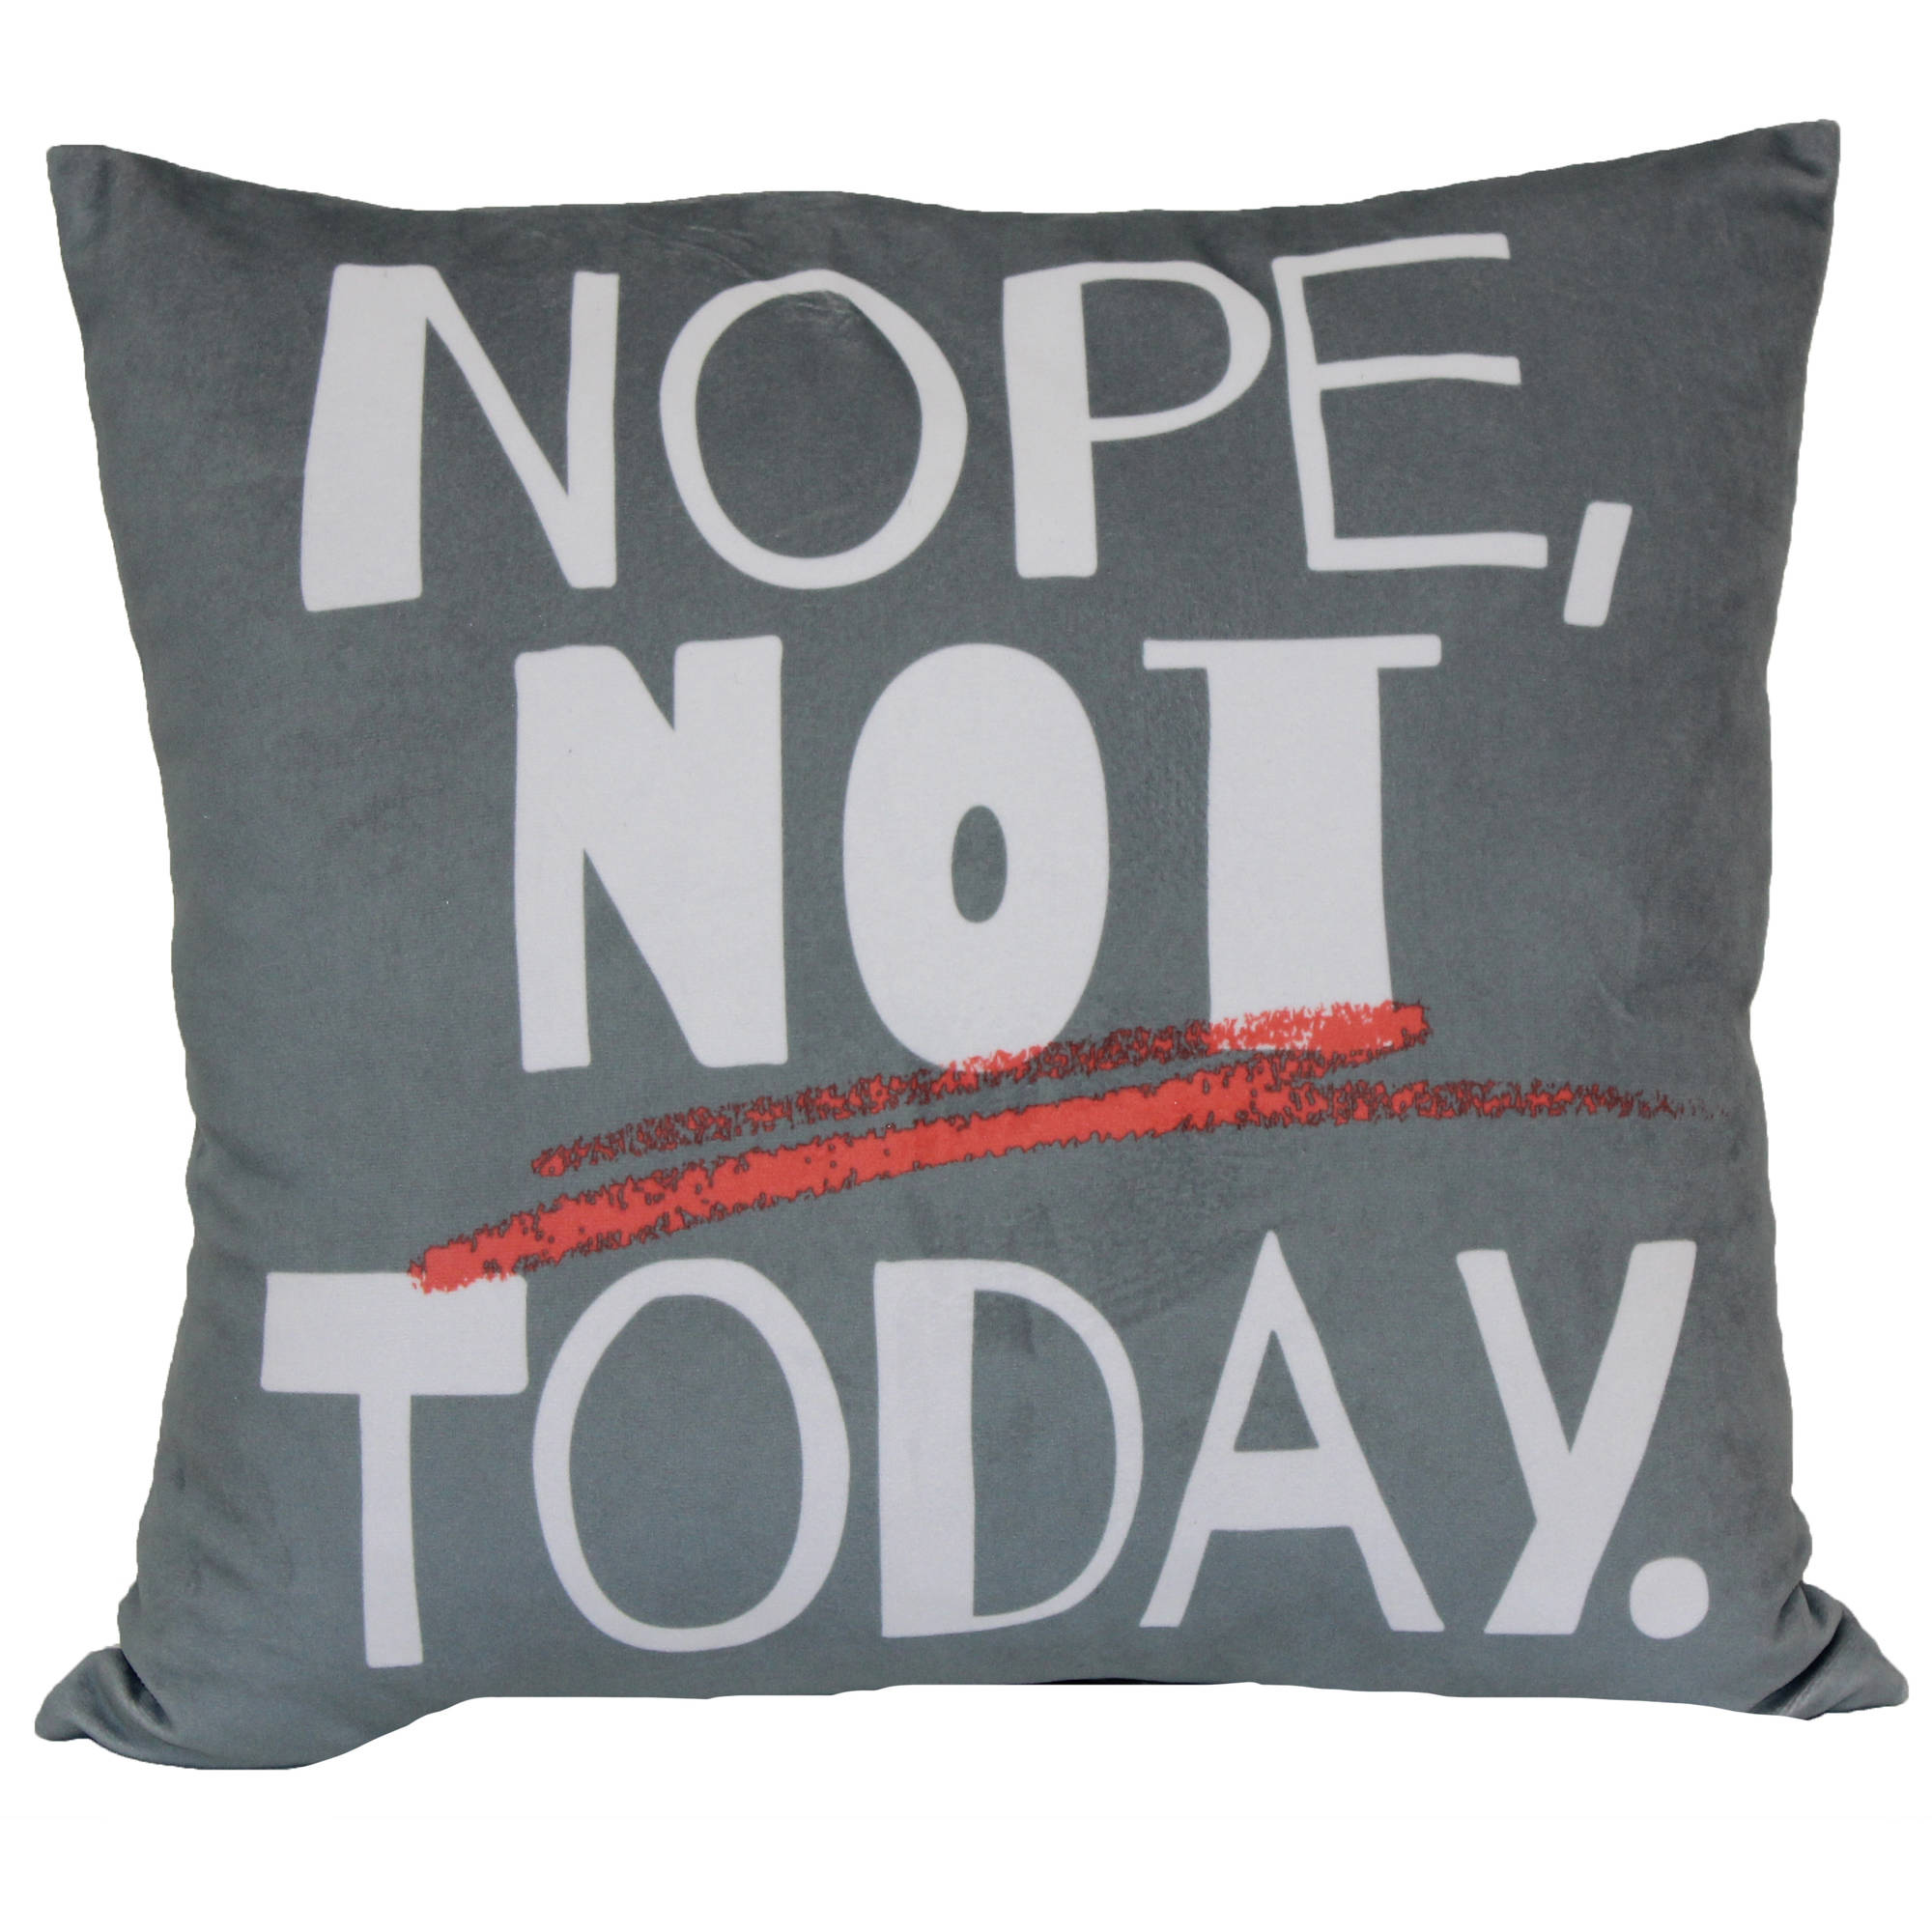 Mainstays Nope Not Today Decorative Pillow